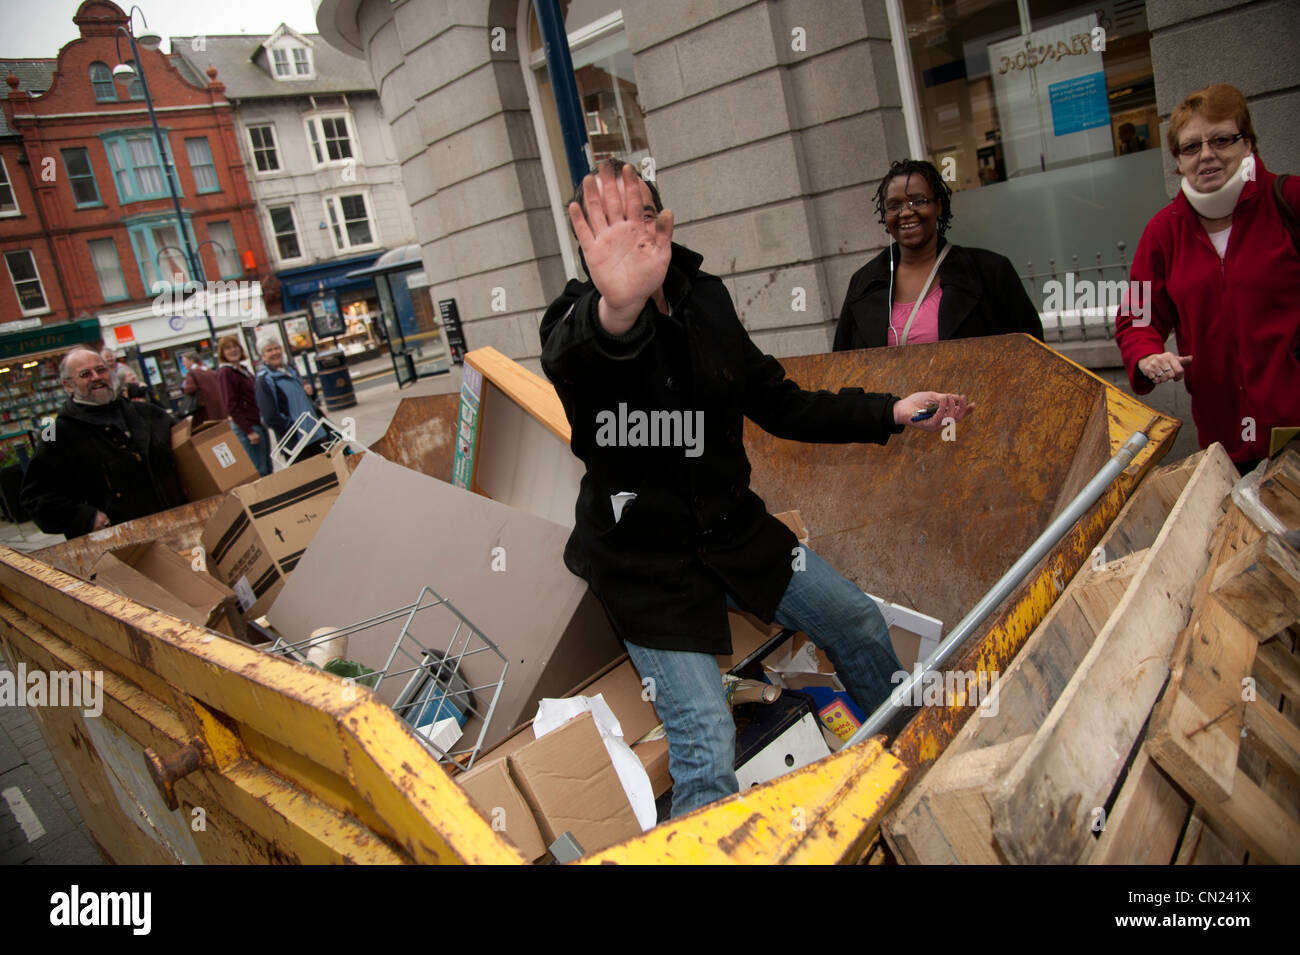 Skip raiding: People scavanging in a skip in the street ...